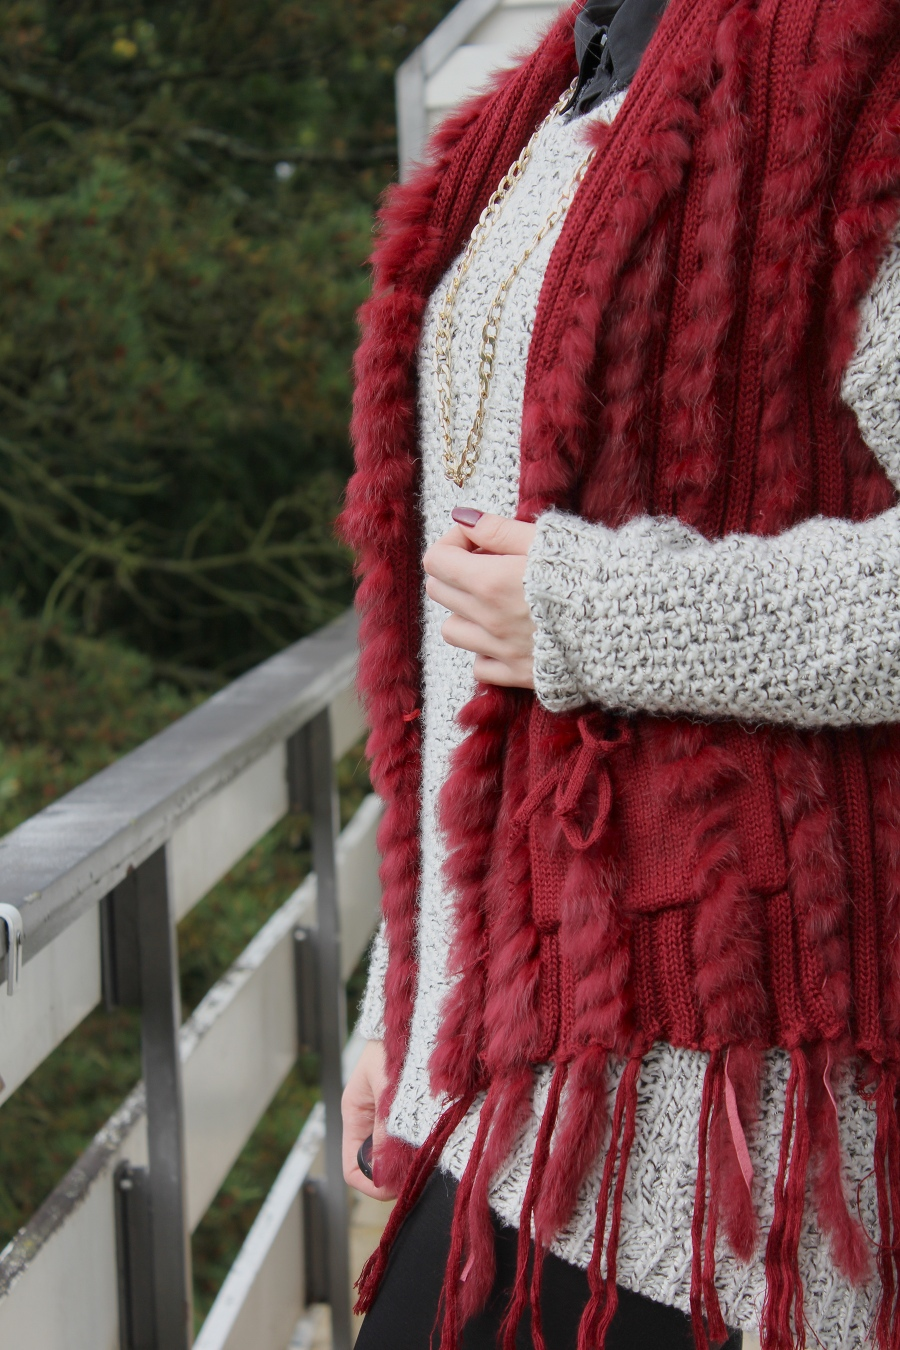 outfit-details-nails-bordeaux-west-fur-gold-accessoires